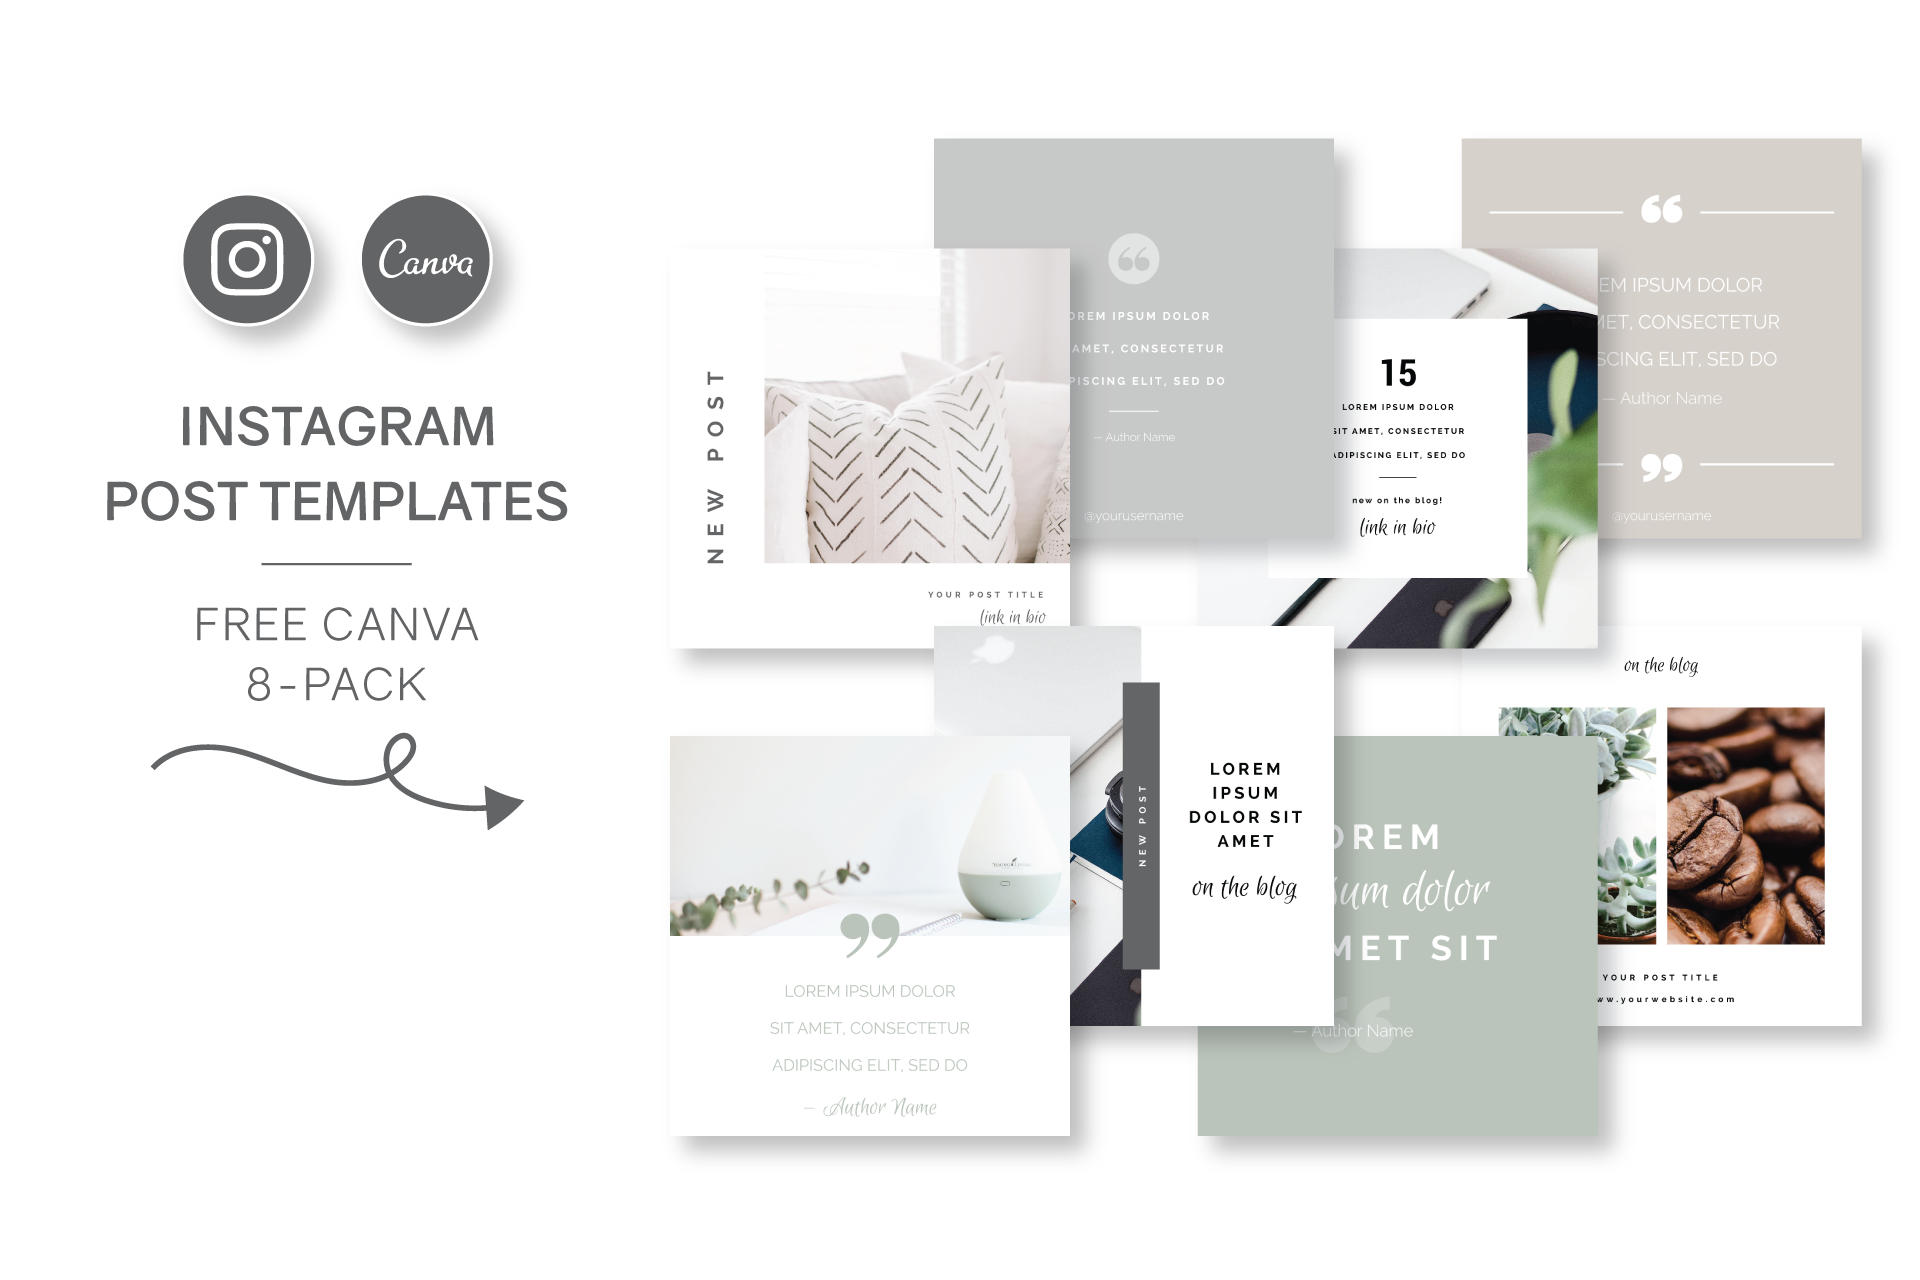 Try out my FREE Instagram Post Templates for Canva